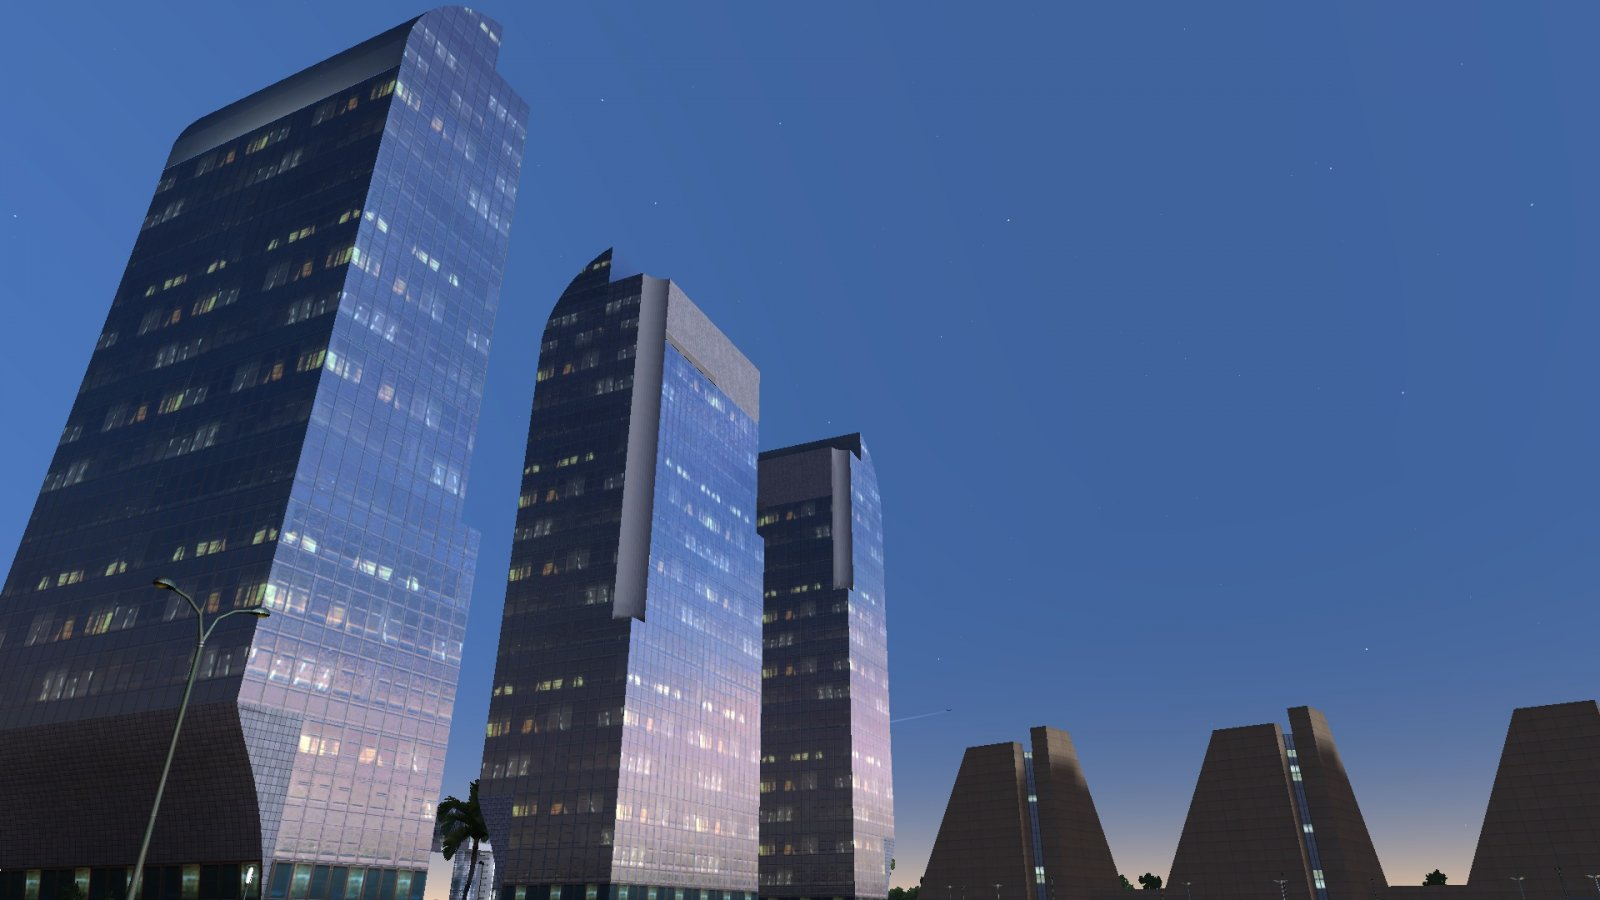 cxl_screenshot_la defense_11.jpg